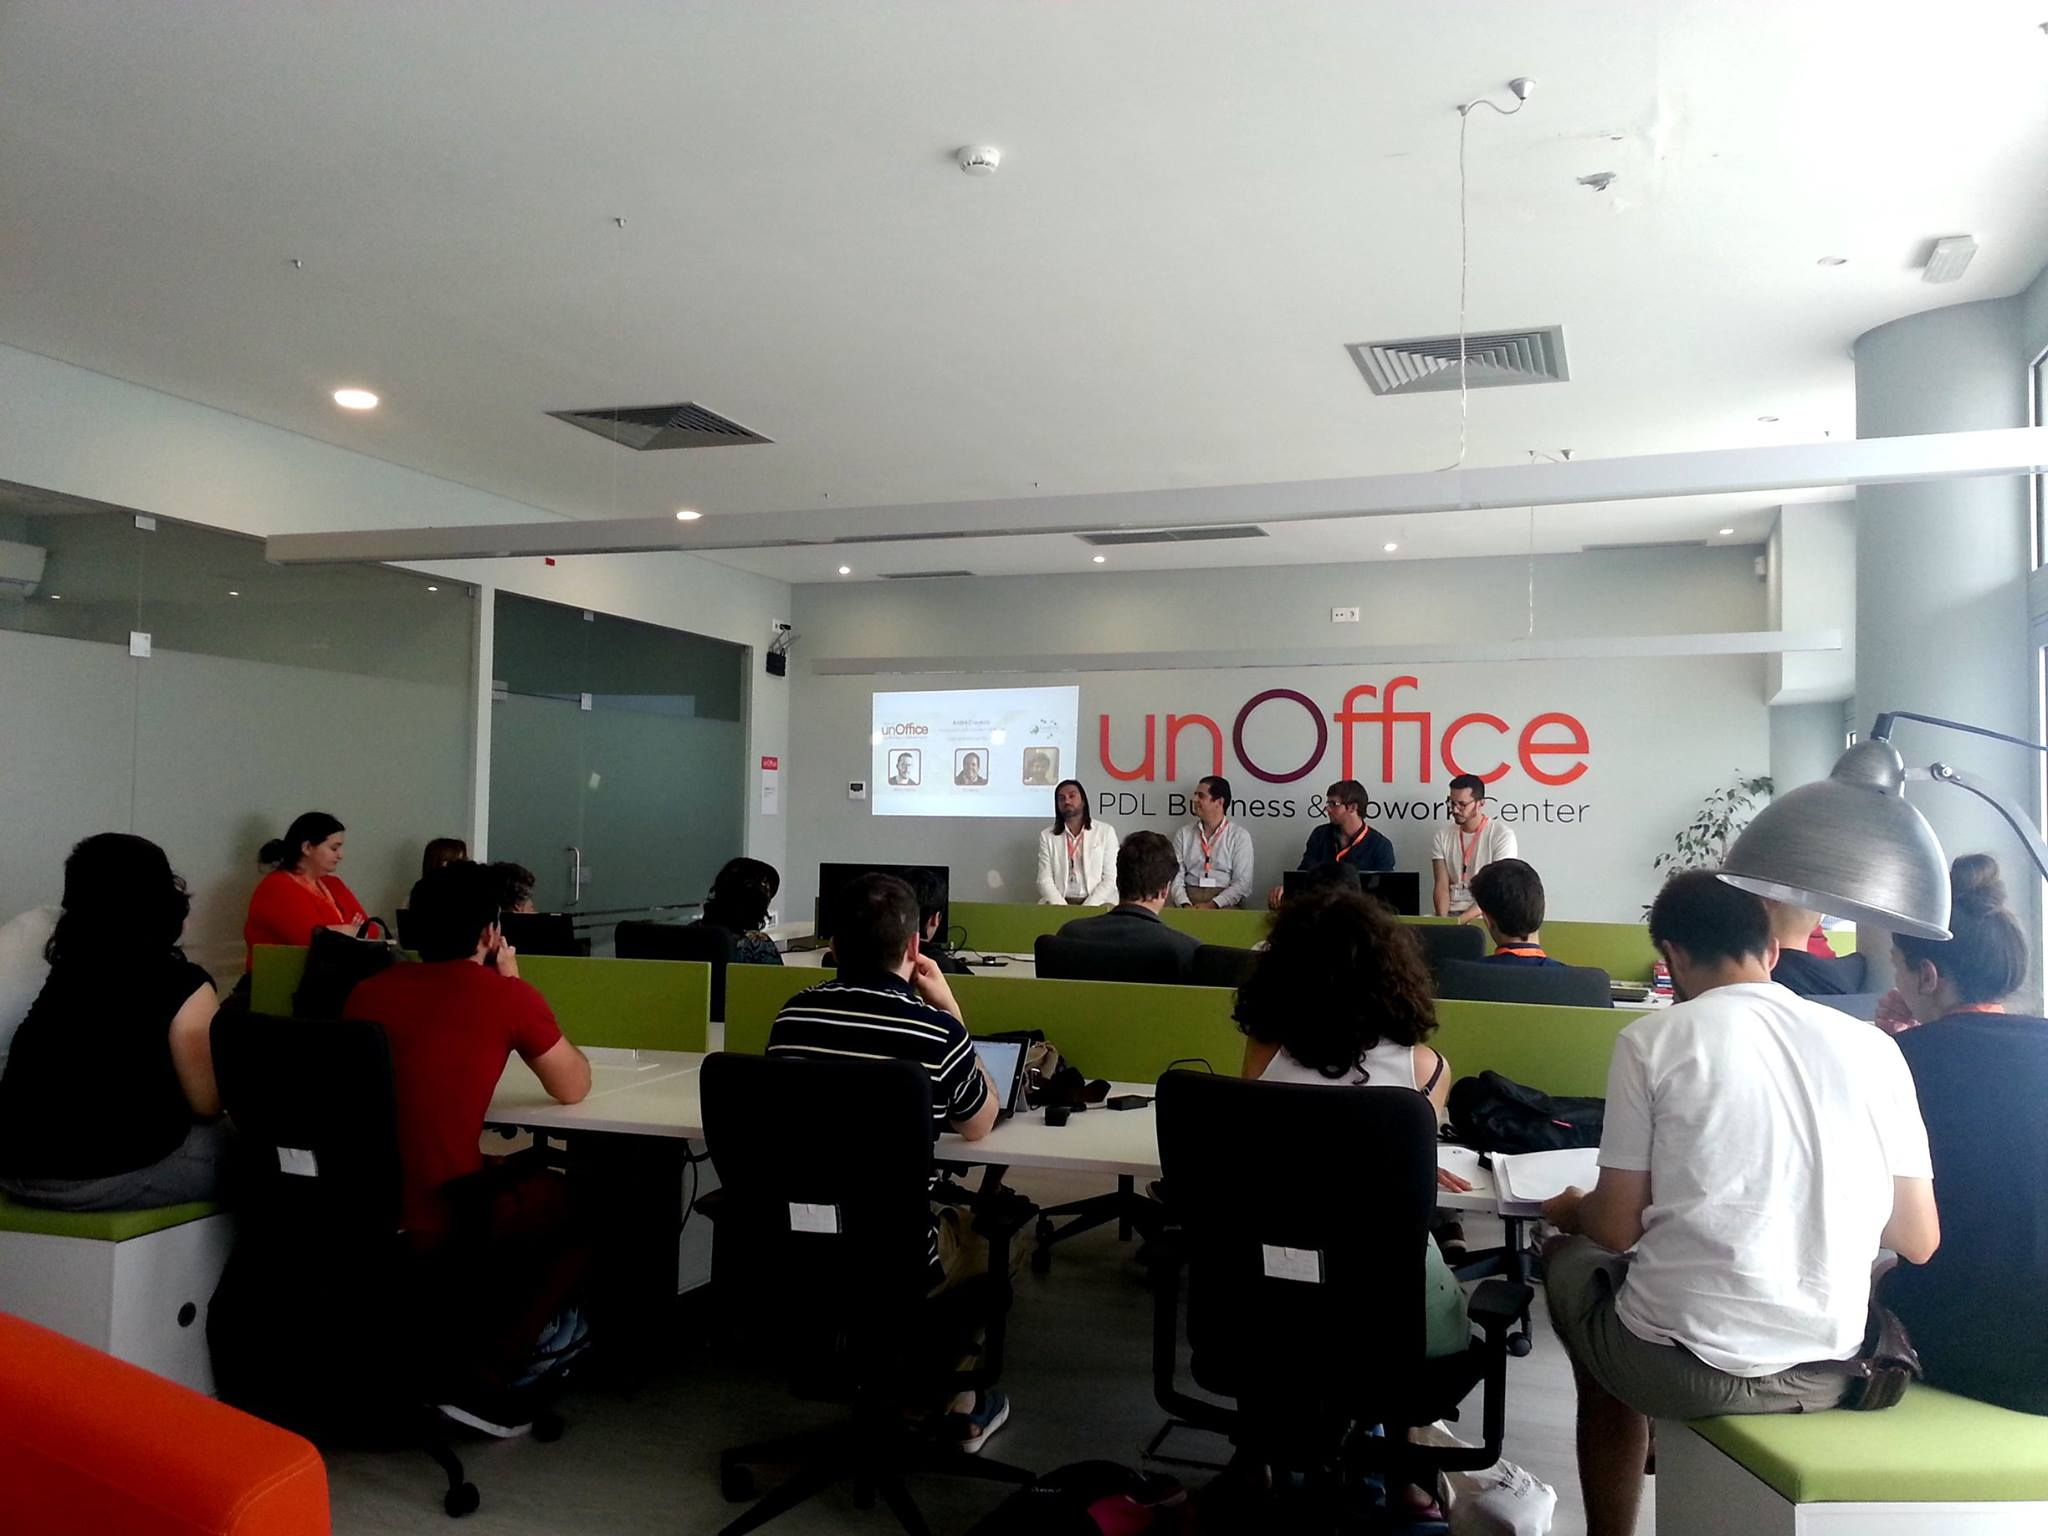 unOffice PDL Business and Cowork Center, Sao Miguel